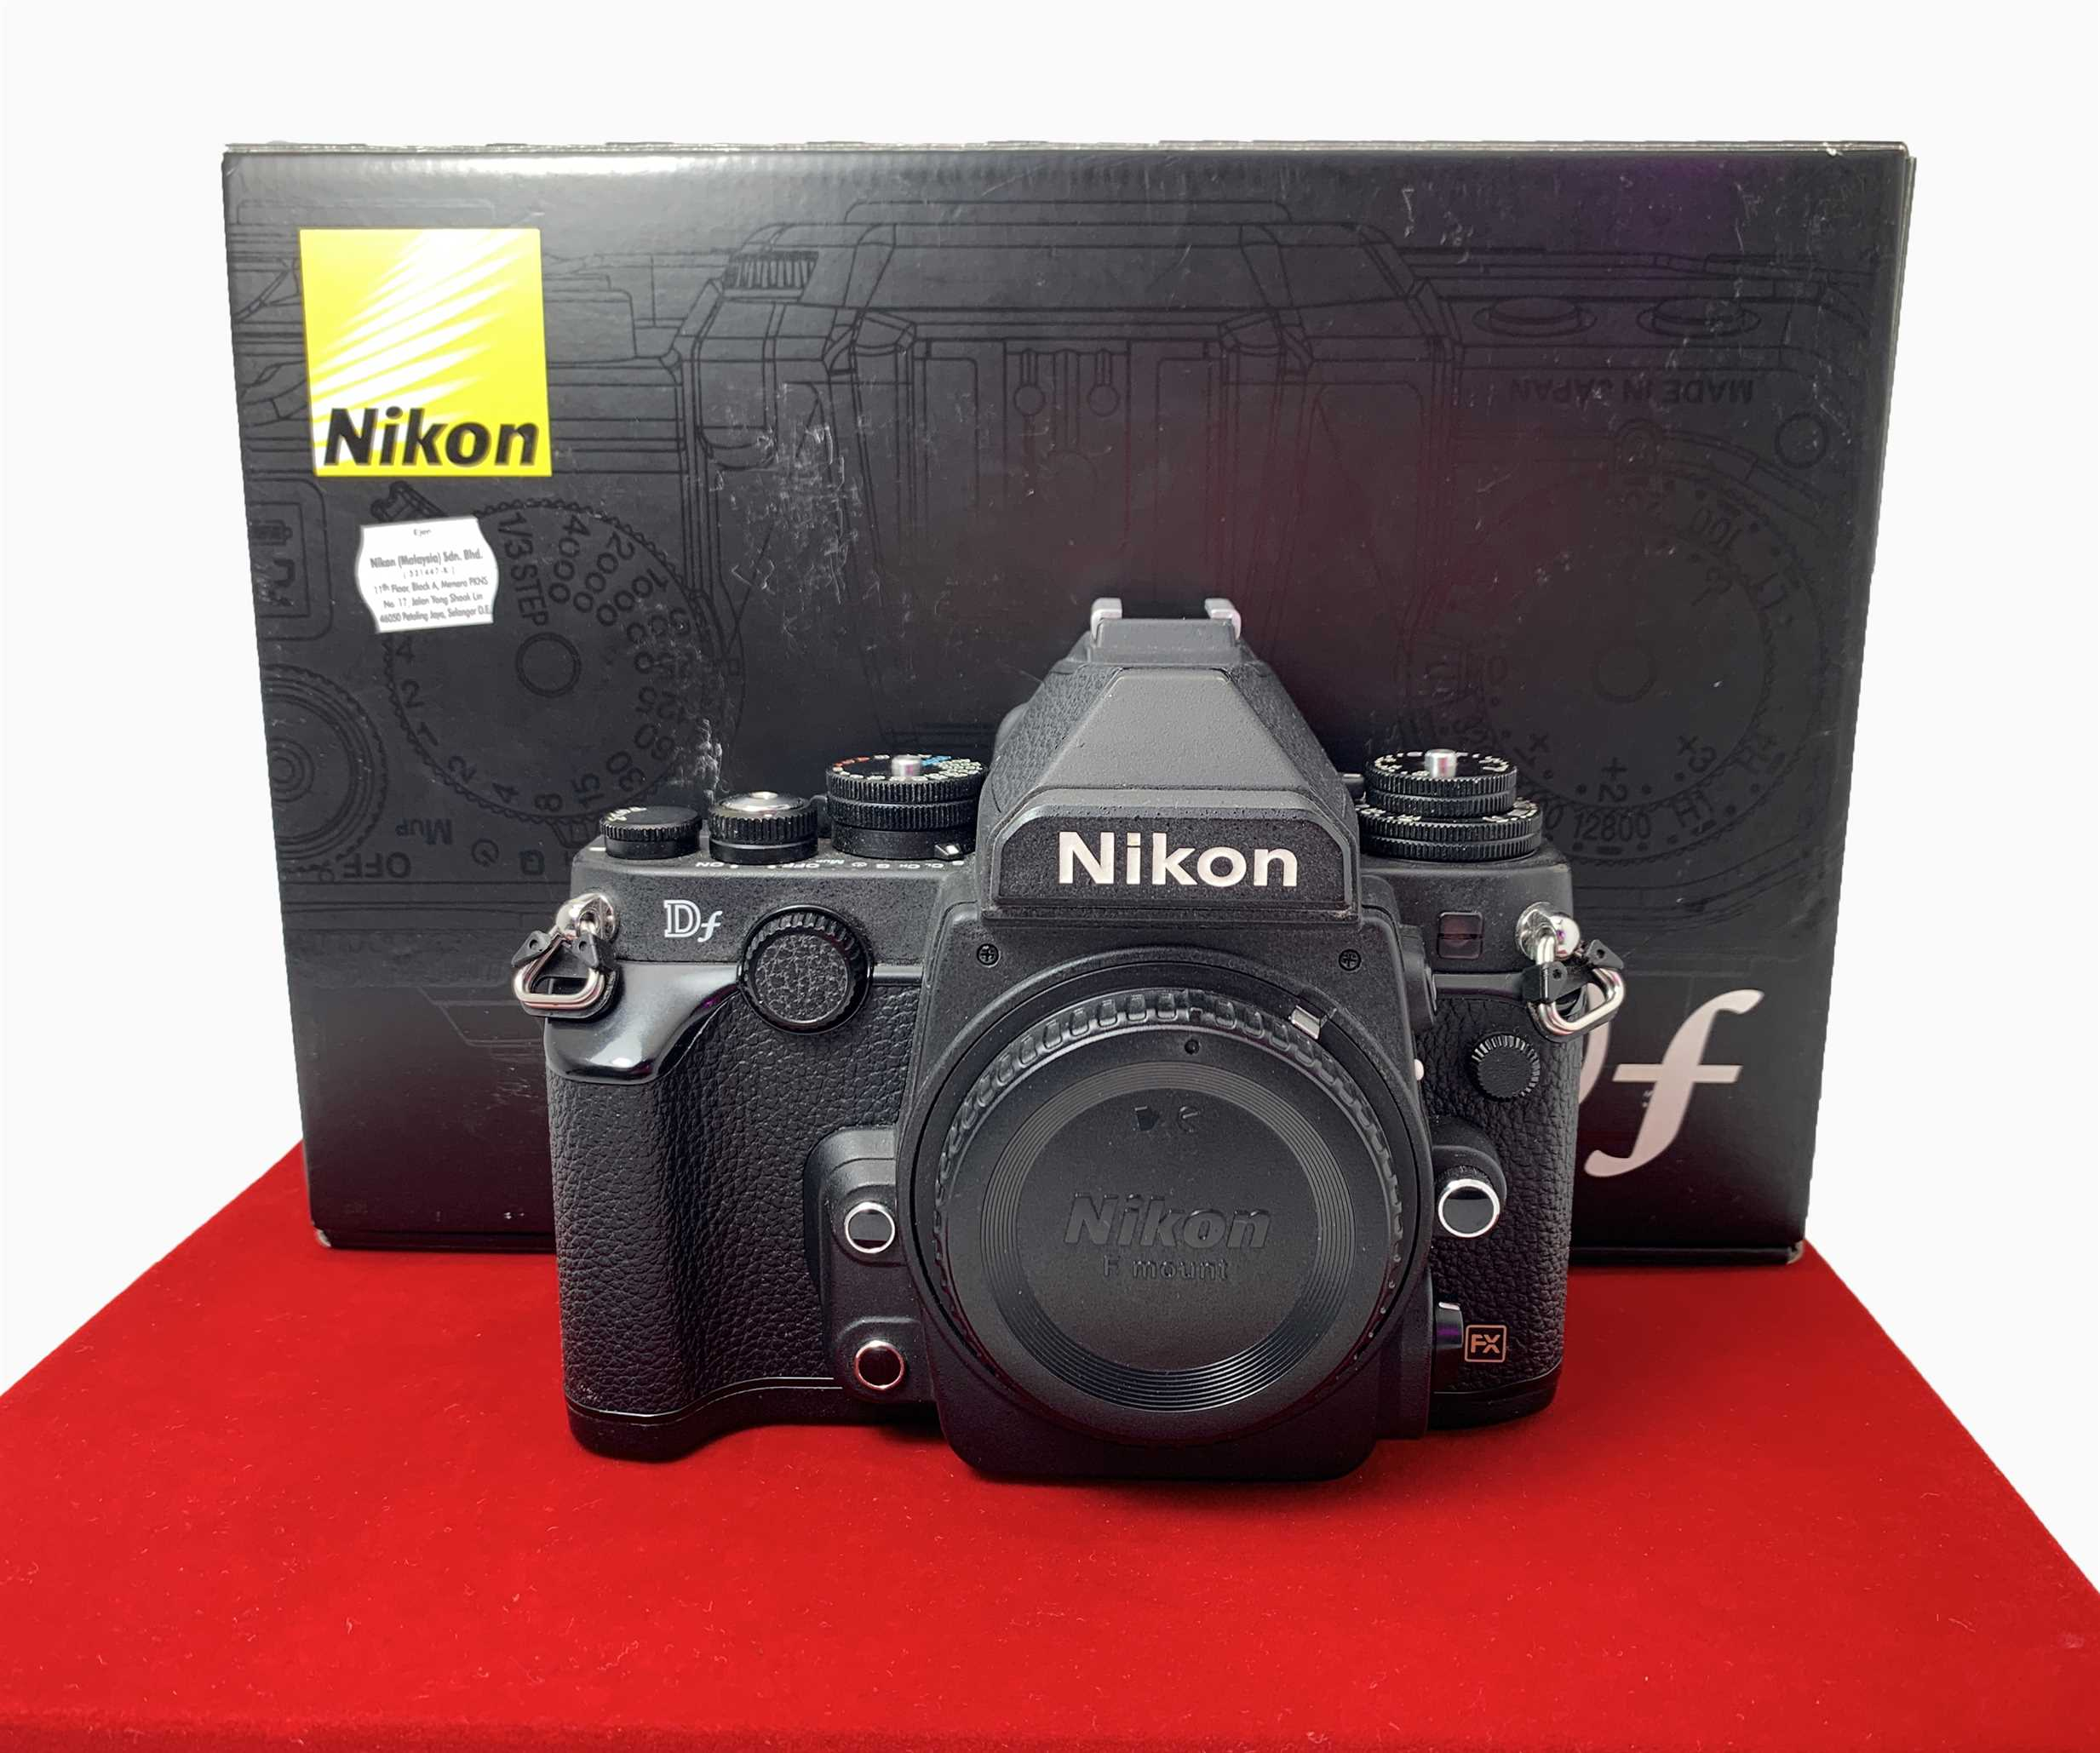 [USED-PJ33] Nikon DF Camera Body (Black),85% Like New Condition (S/N:8401777)